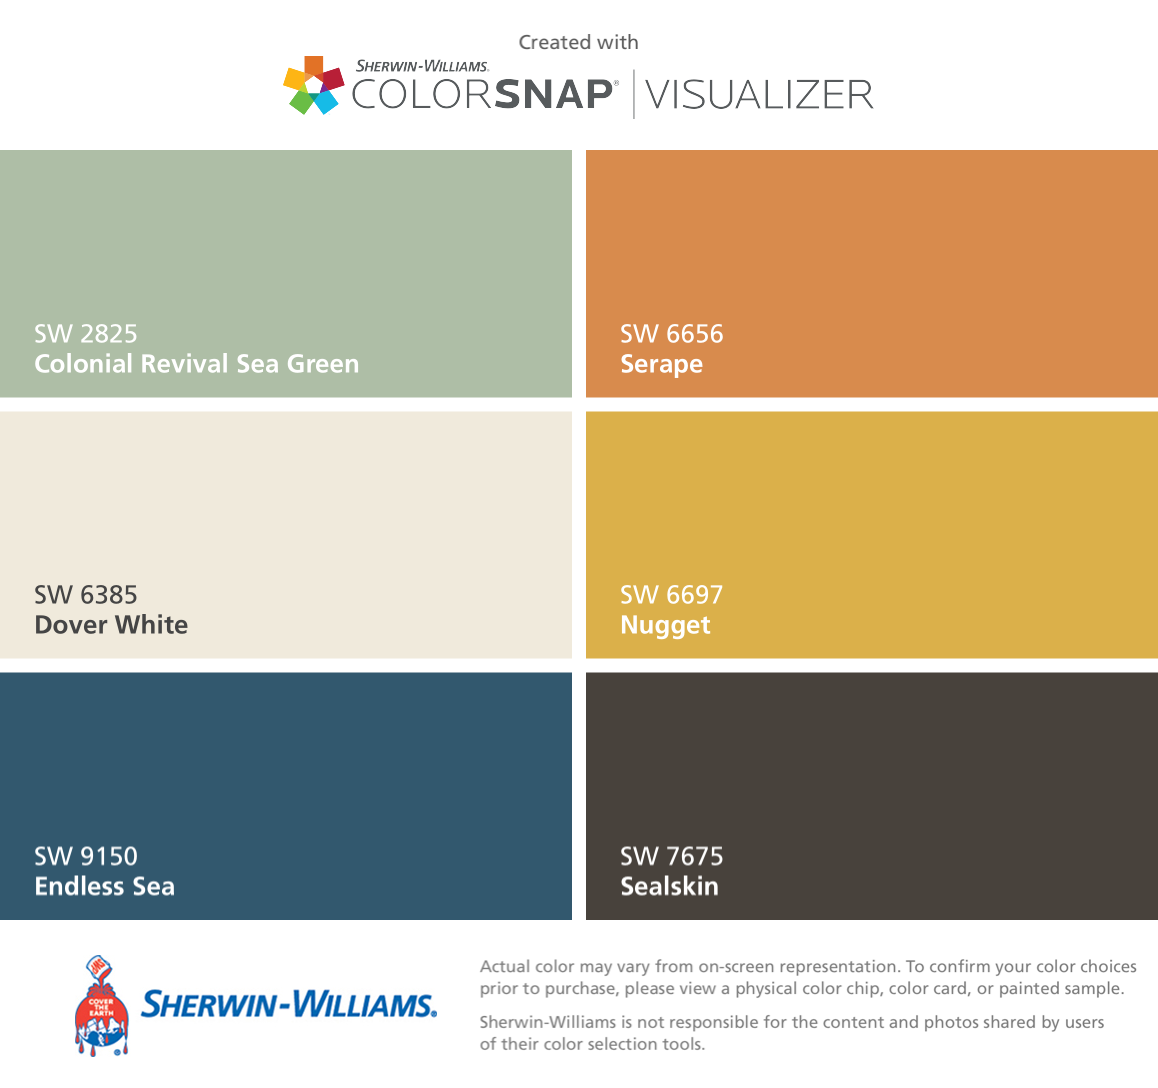 I Found These Colors With Colorsnap Visualizer For Iphone By Sherwin Willi Exterior Paint Colors For House Paint Colors For Home Sherwin Williams Paint Colors